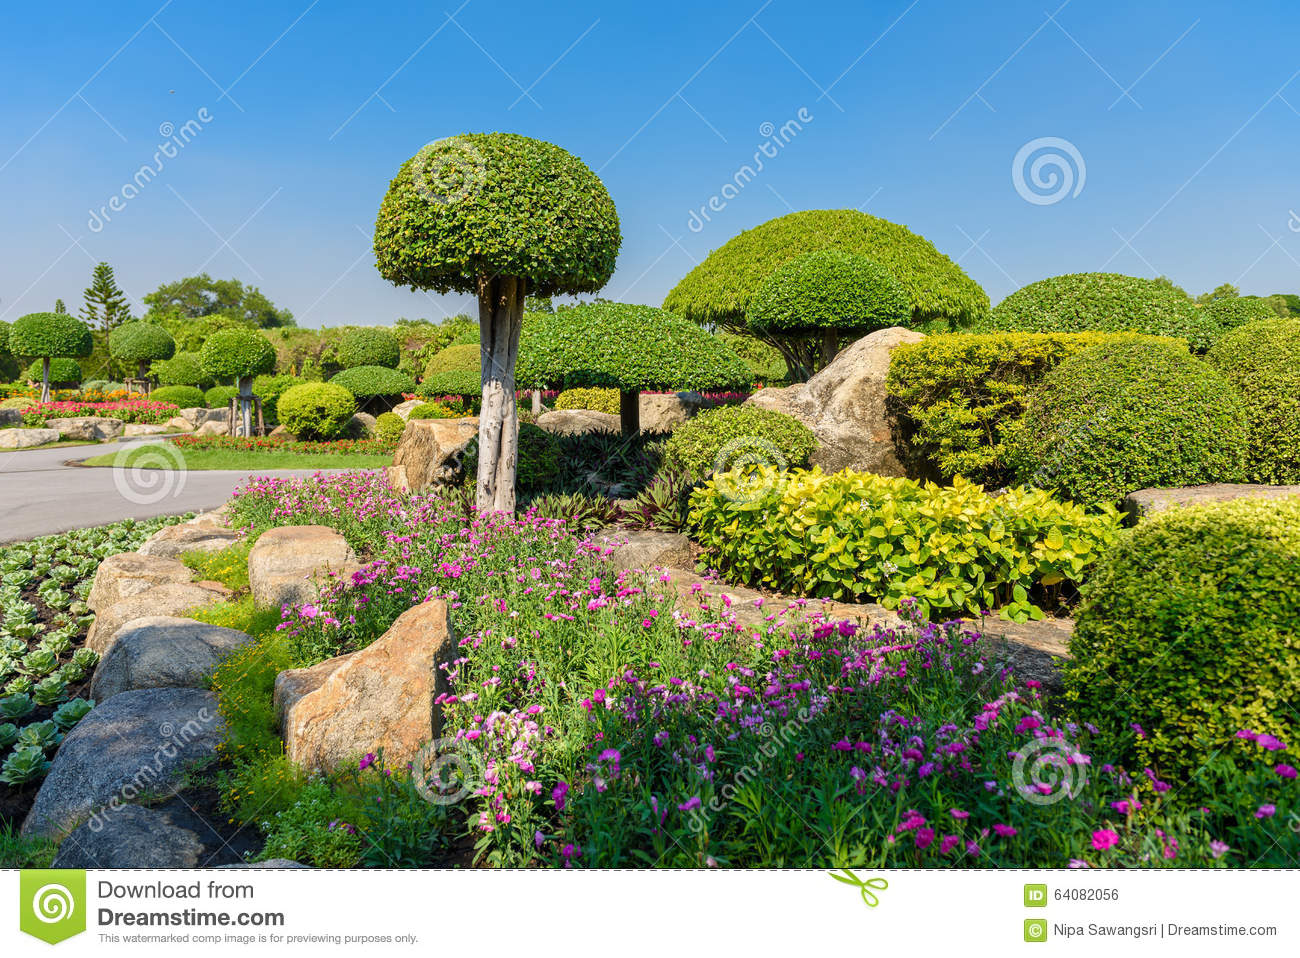 Gardening and landscaping stock photo image 64082056 - Decorative small trees for landscaping ...